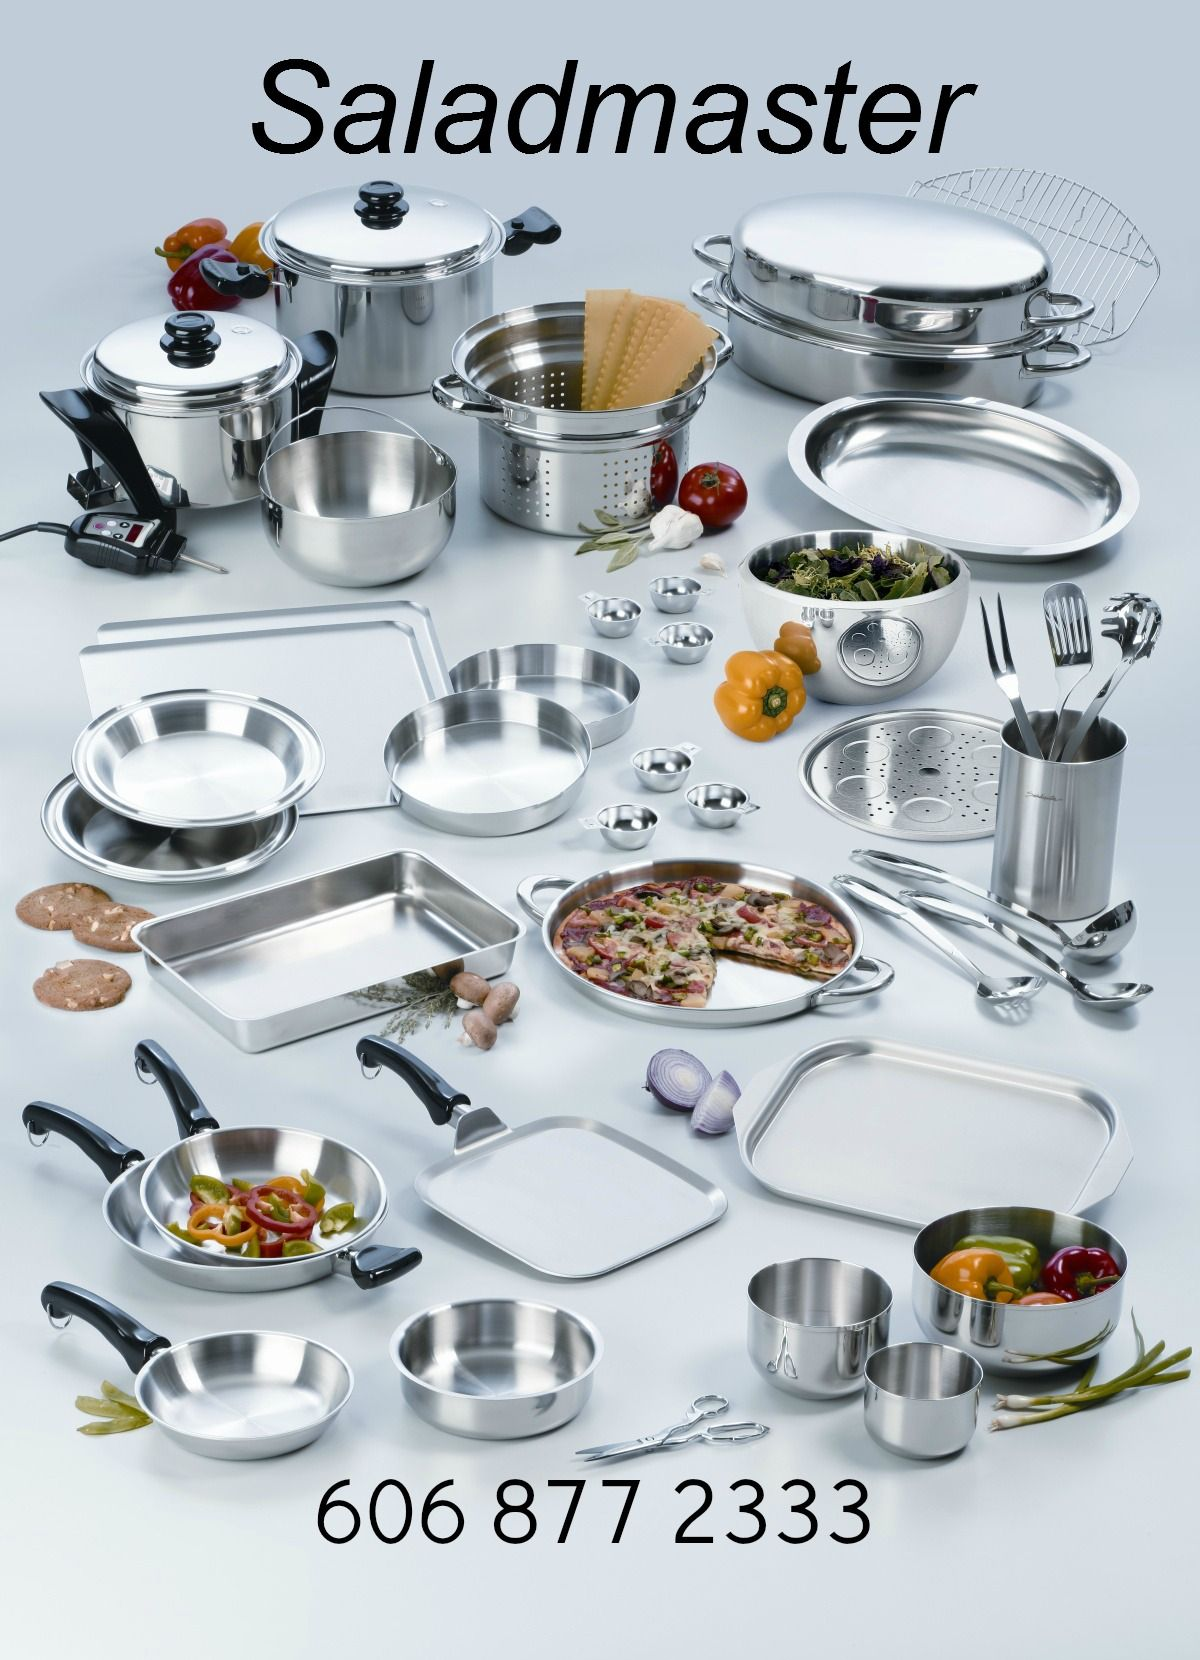 Saladmaster Cookware 316 Stainless Steel It S Bakeware Servingware Storageware All In One